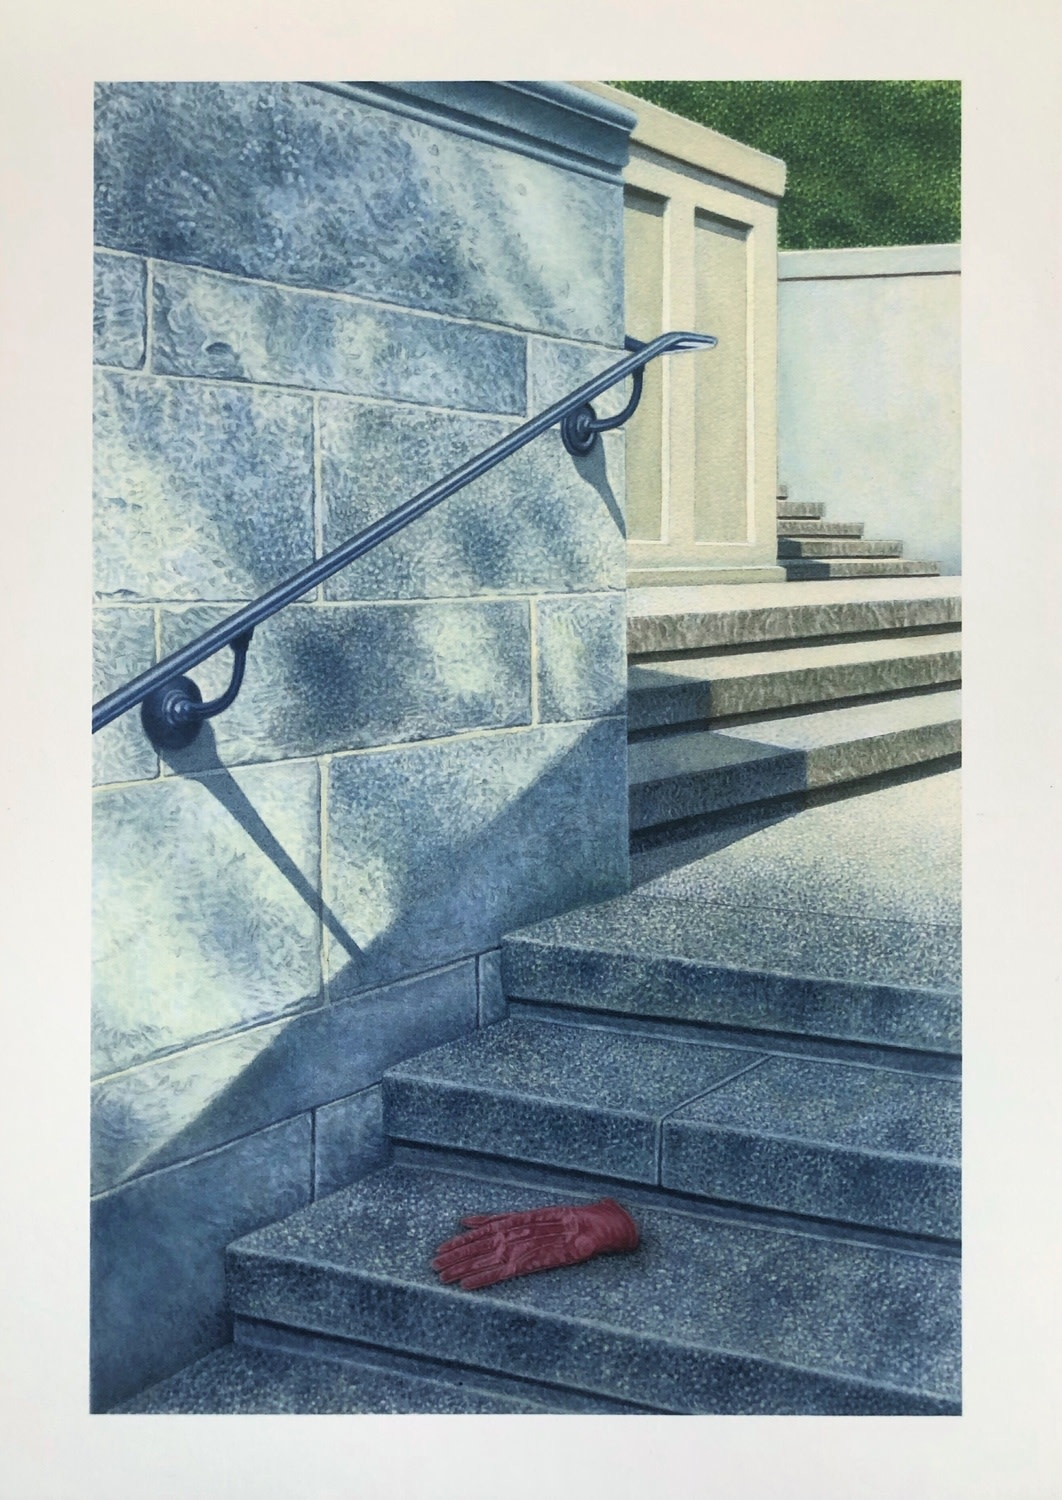 """<span class=""""link fancybox-details-link""""><a href=""""/exhibitions/36/works/image_standalone4862/"""">View Detail Page</a></span><p>Peter Knock</p><p><em>The Red Glove</em></p><p>watercolour</p><p>£750</p>"""